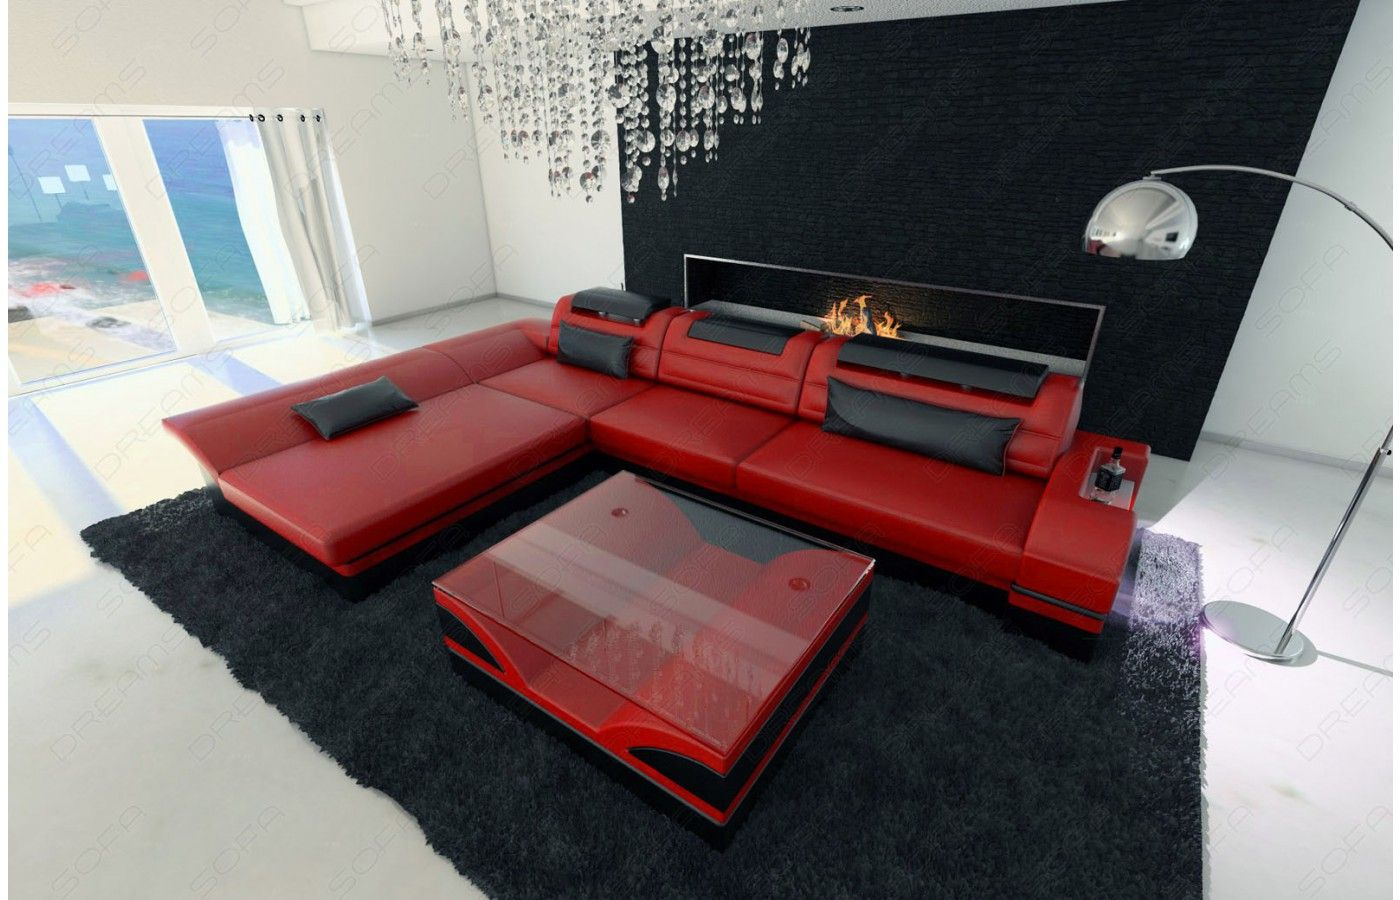 ecksofa monza ledersofa. Black Bedroom Furniture Sets. Home Design Ideas